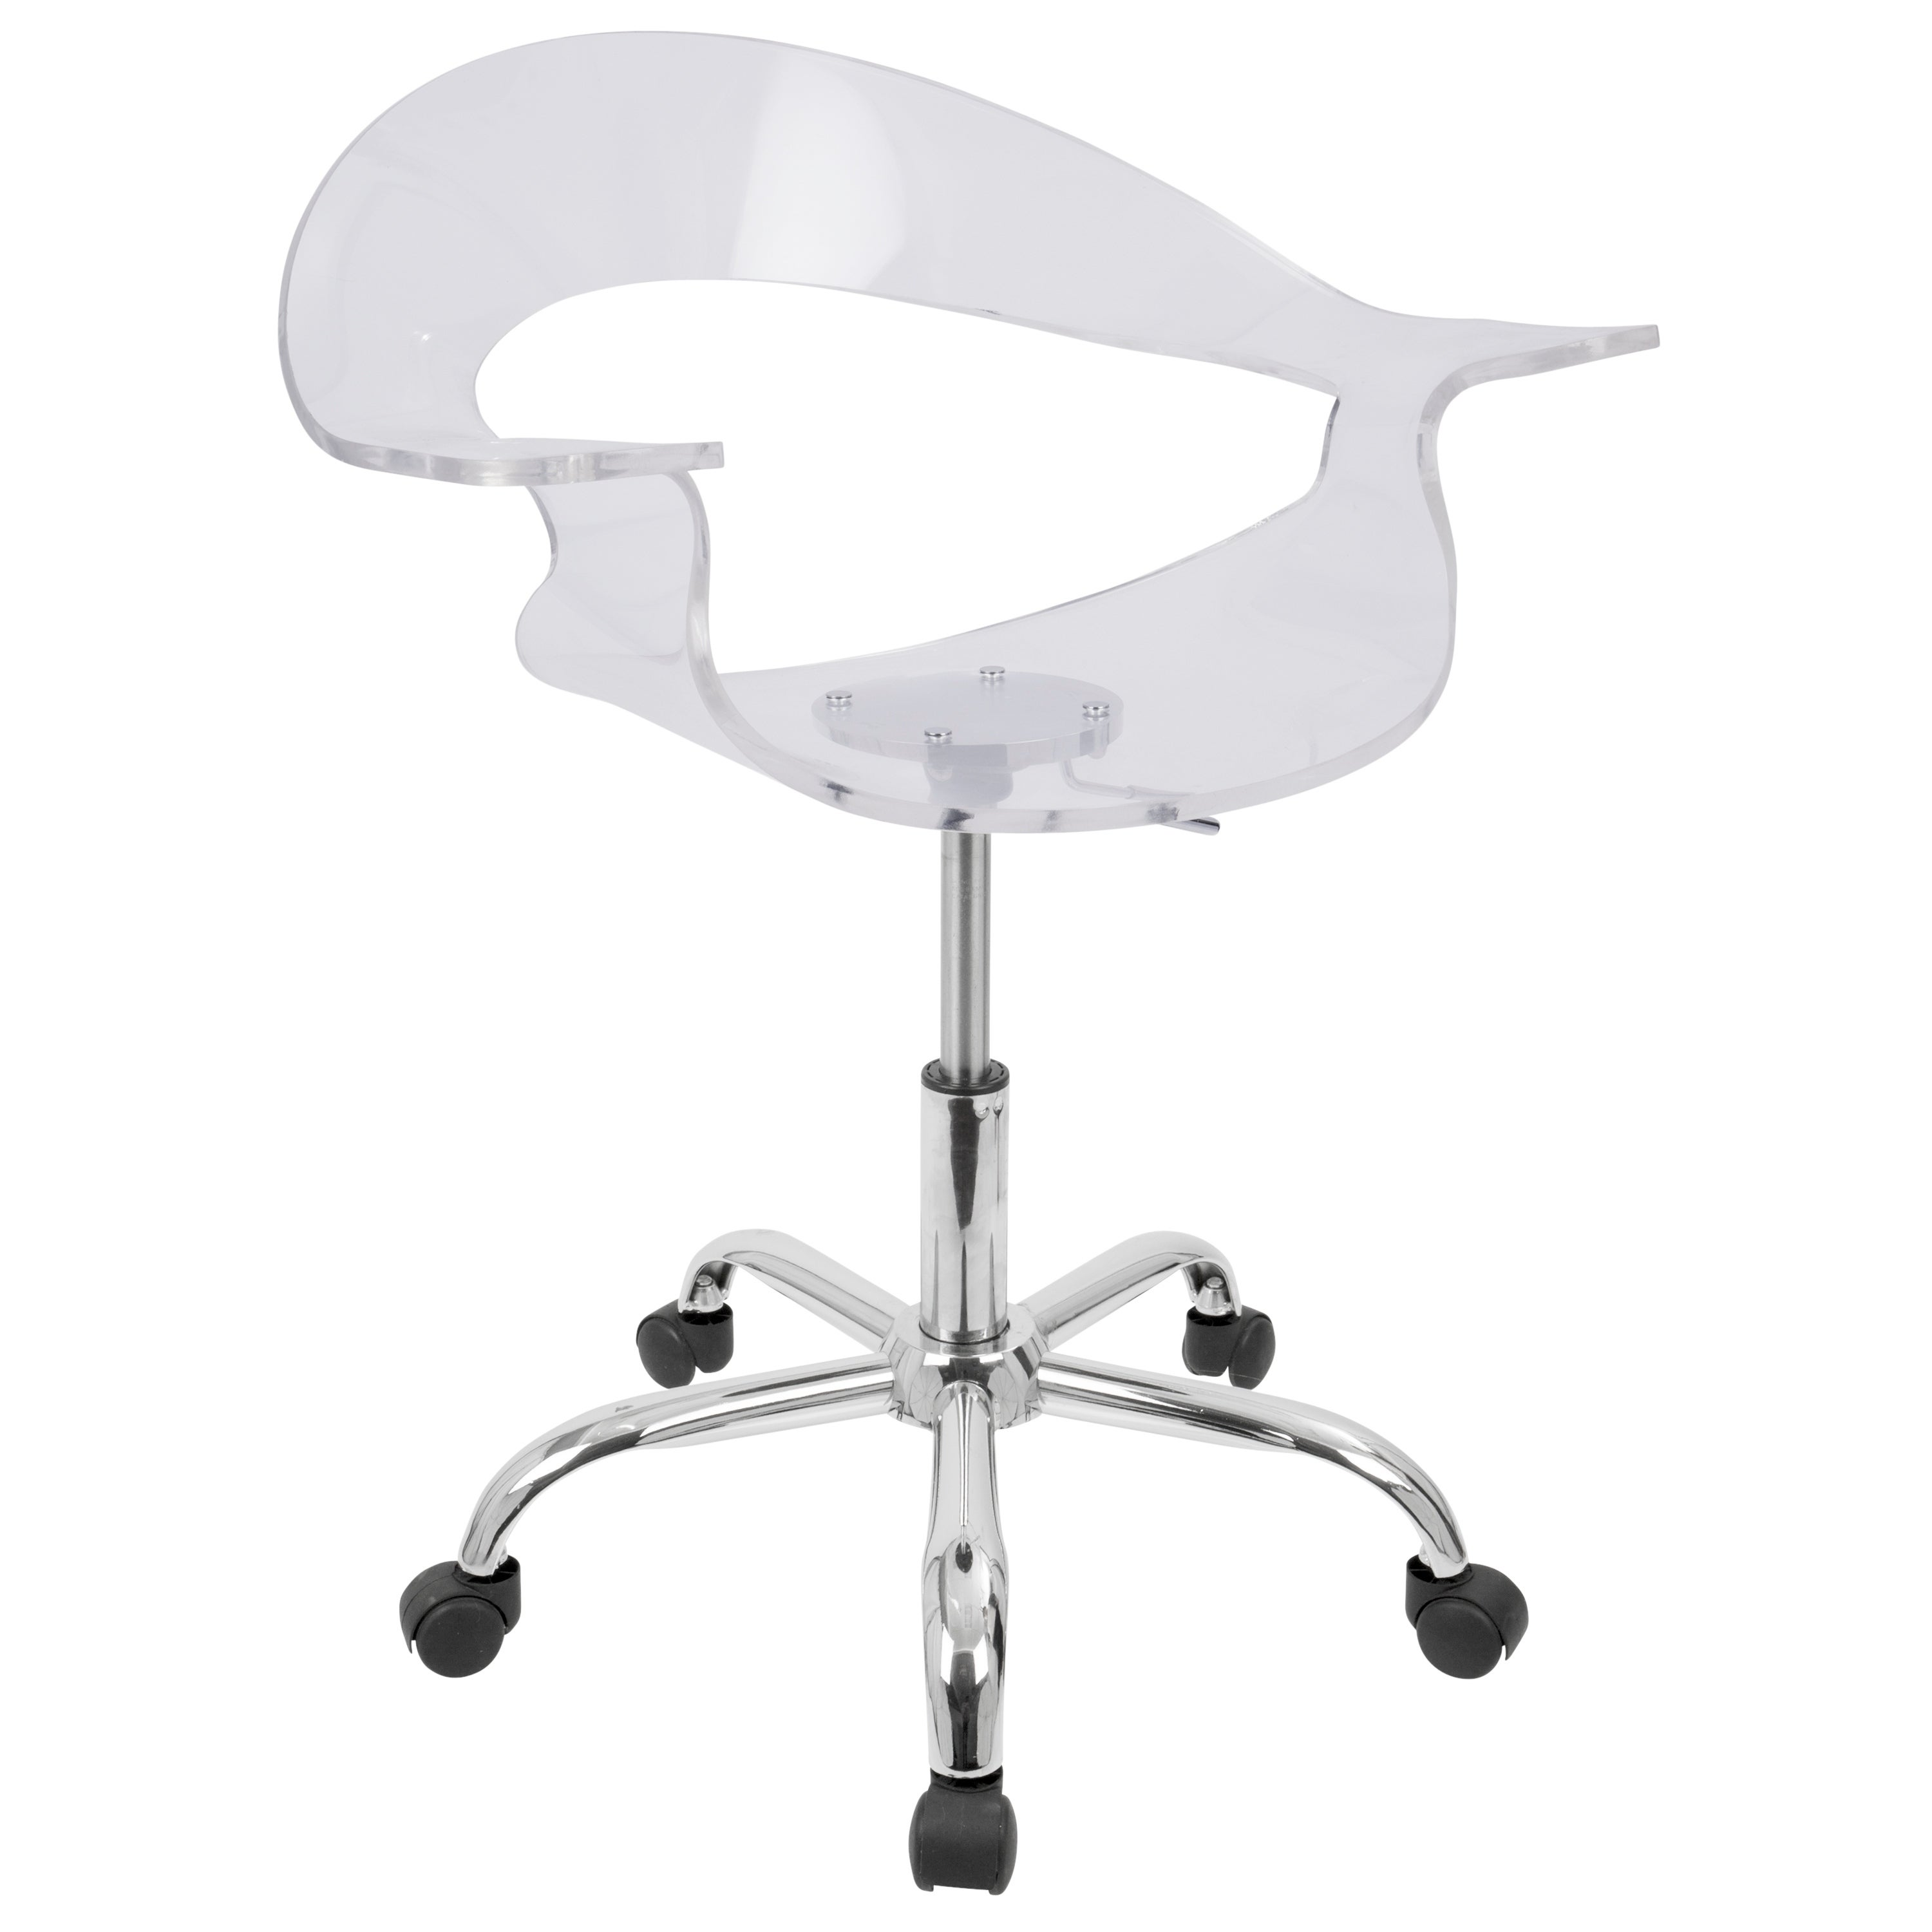 Image of: Shop Black Friday Deals On Lumisource Rumor Clear Acrylic Office Chair Overstock 4835288